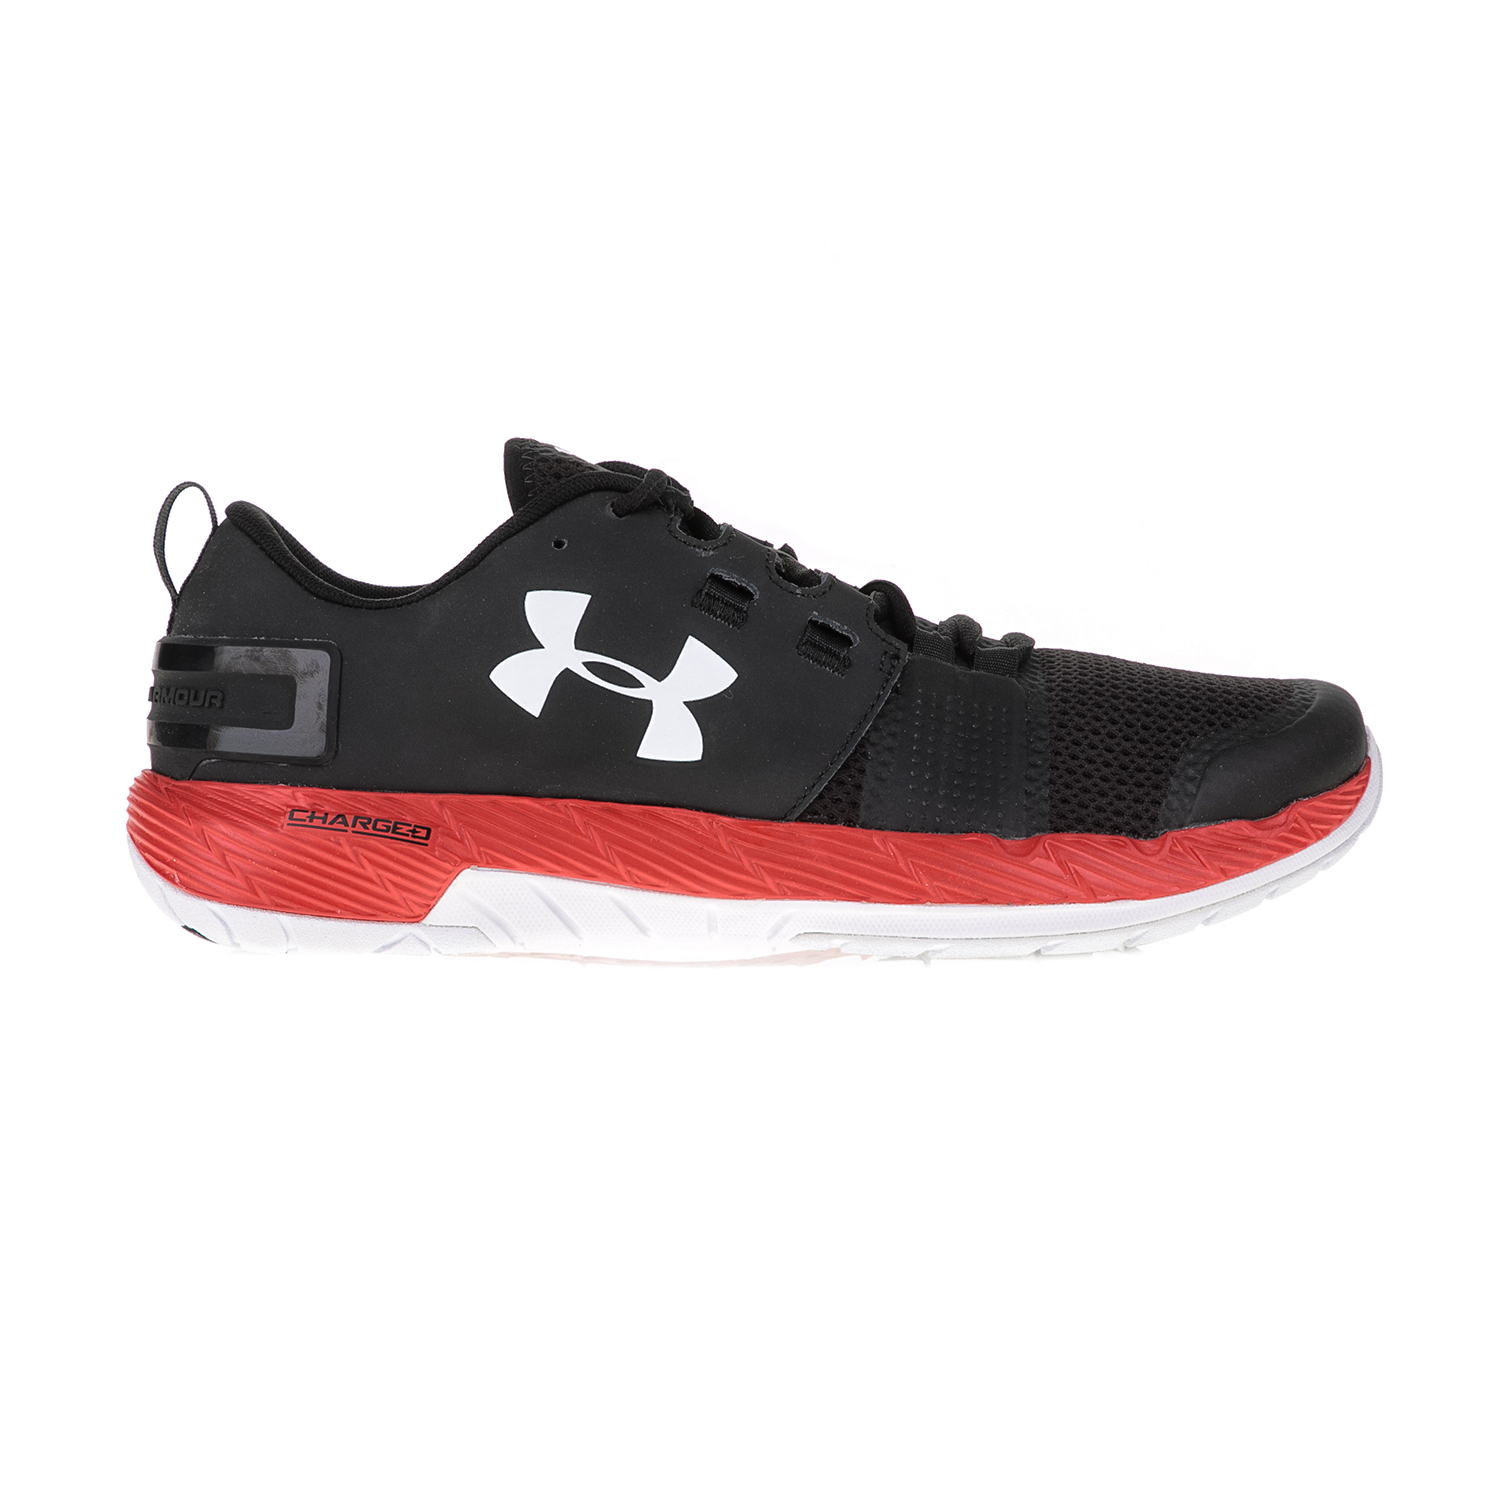 UNDER ARMOUR – Ανδρικά αθλητικά παπούτσια UNDER ARMOUR Commit TR μαύρα-κόκκινα